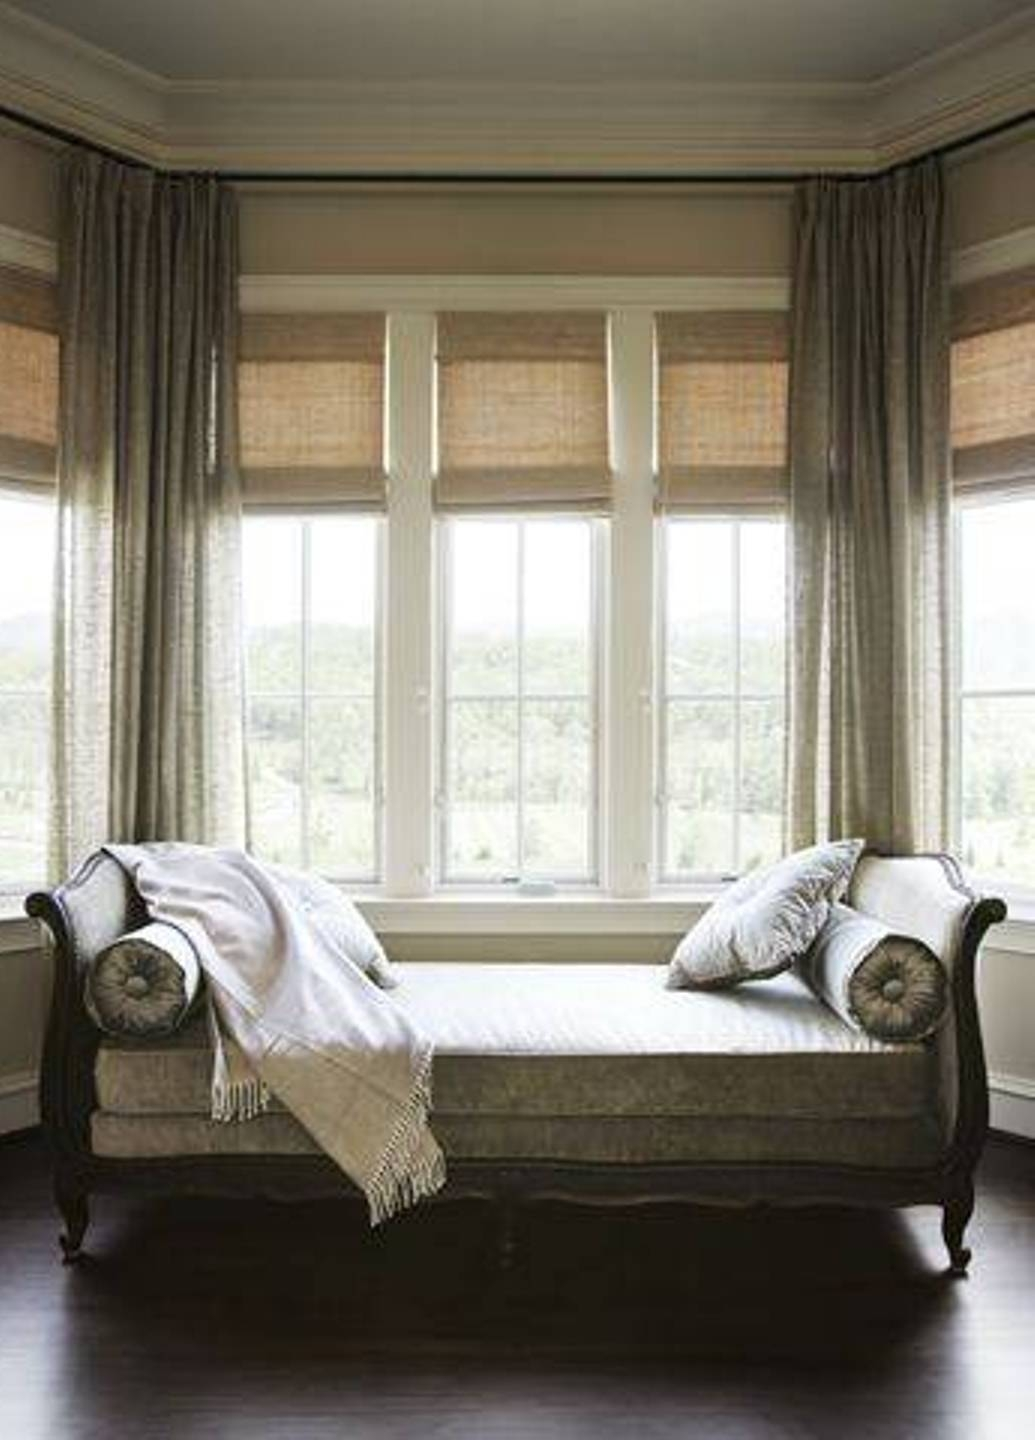 Fresh Sofa Bay Window Decorating Idea Inexpensive Classy Simple On regarding Sofas For Bay Window (Image 9 of 15)